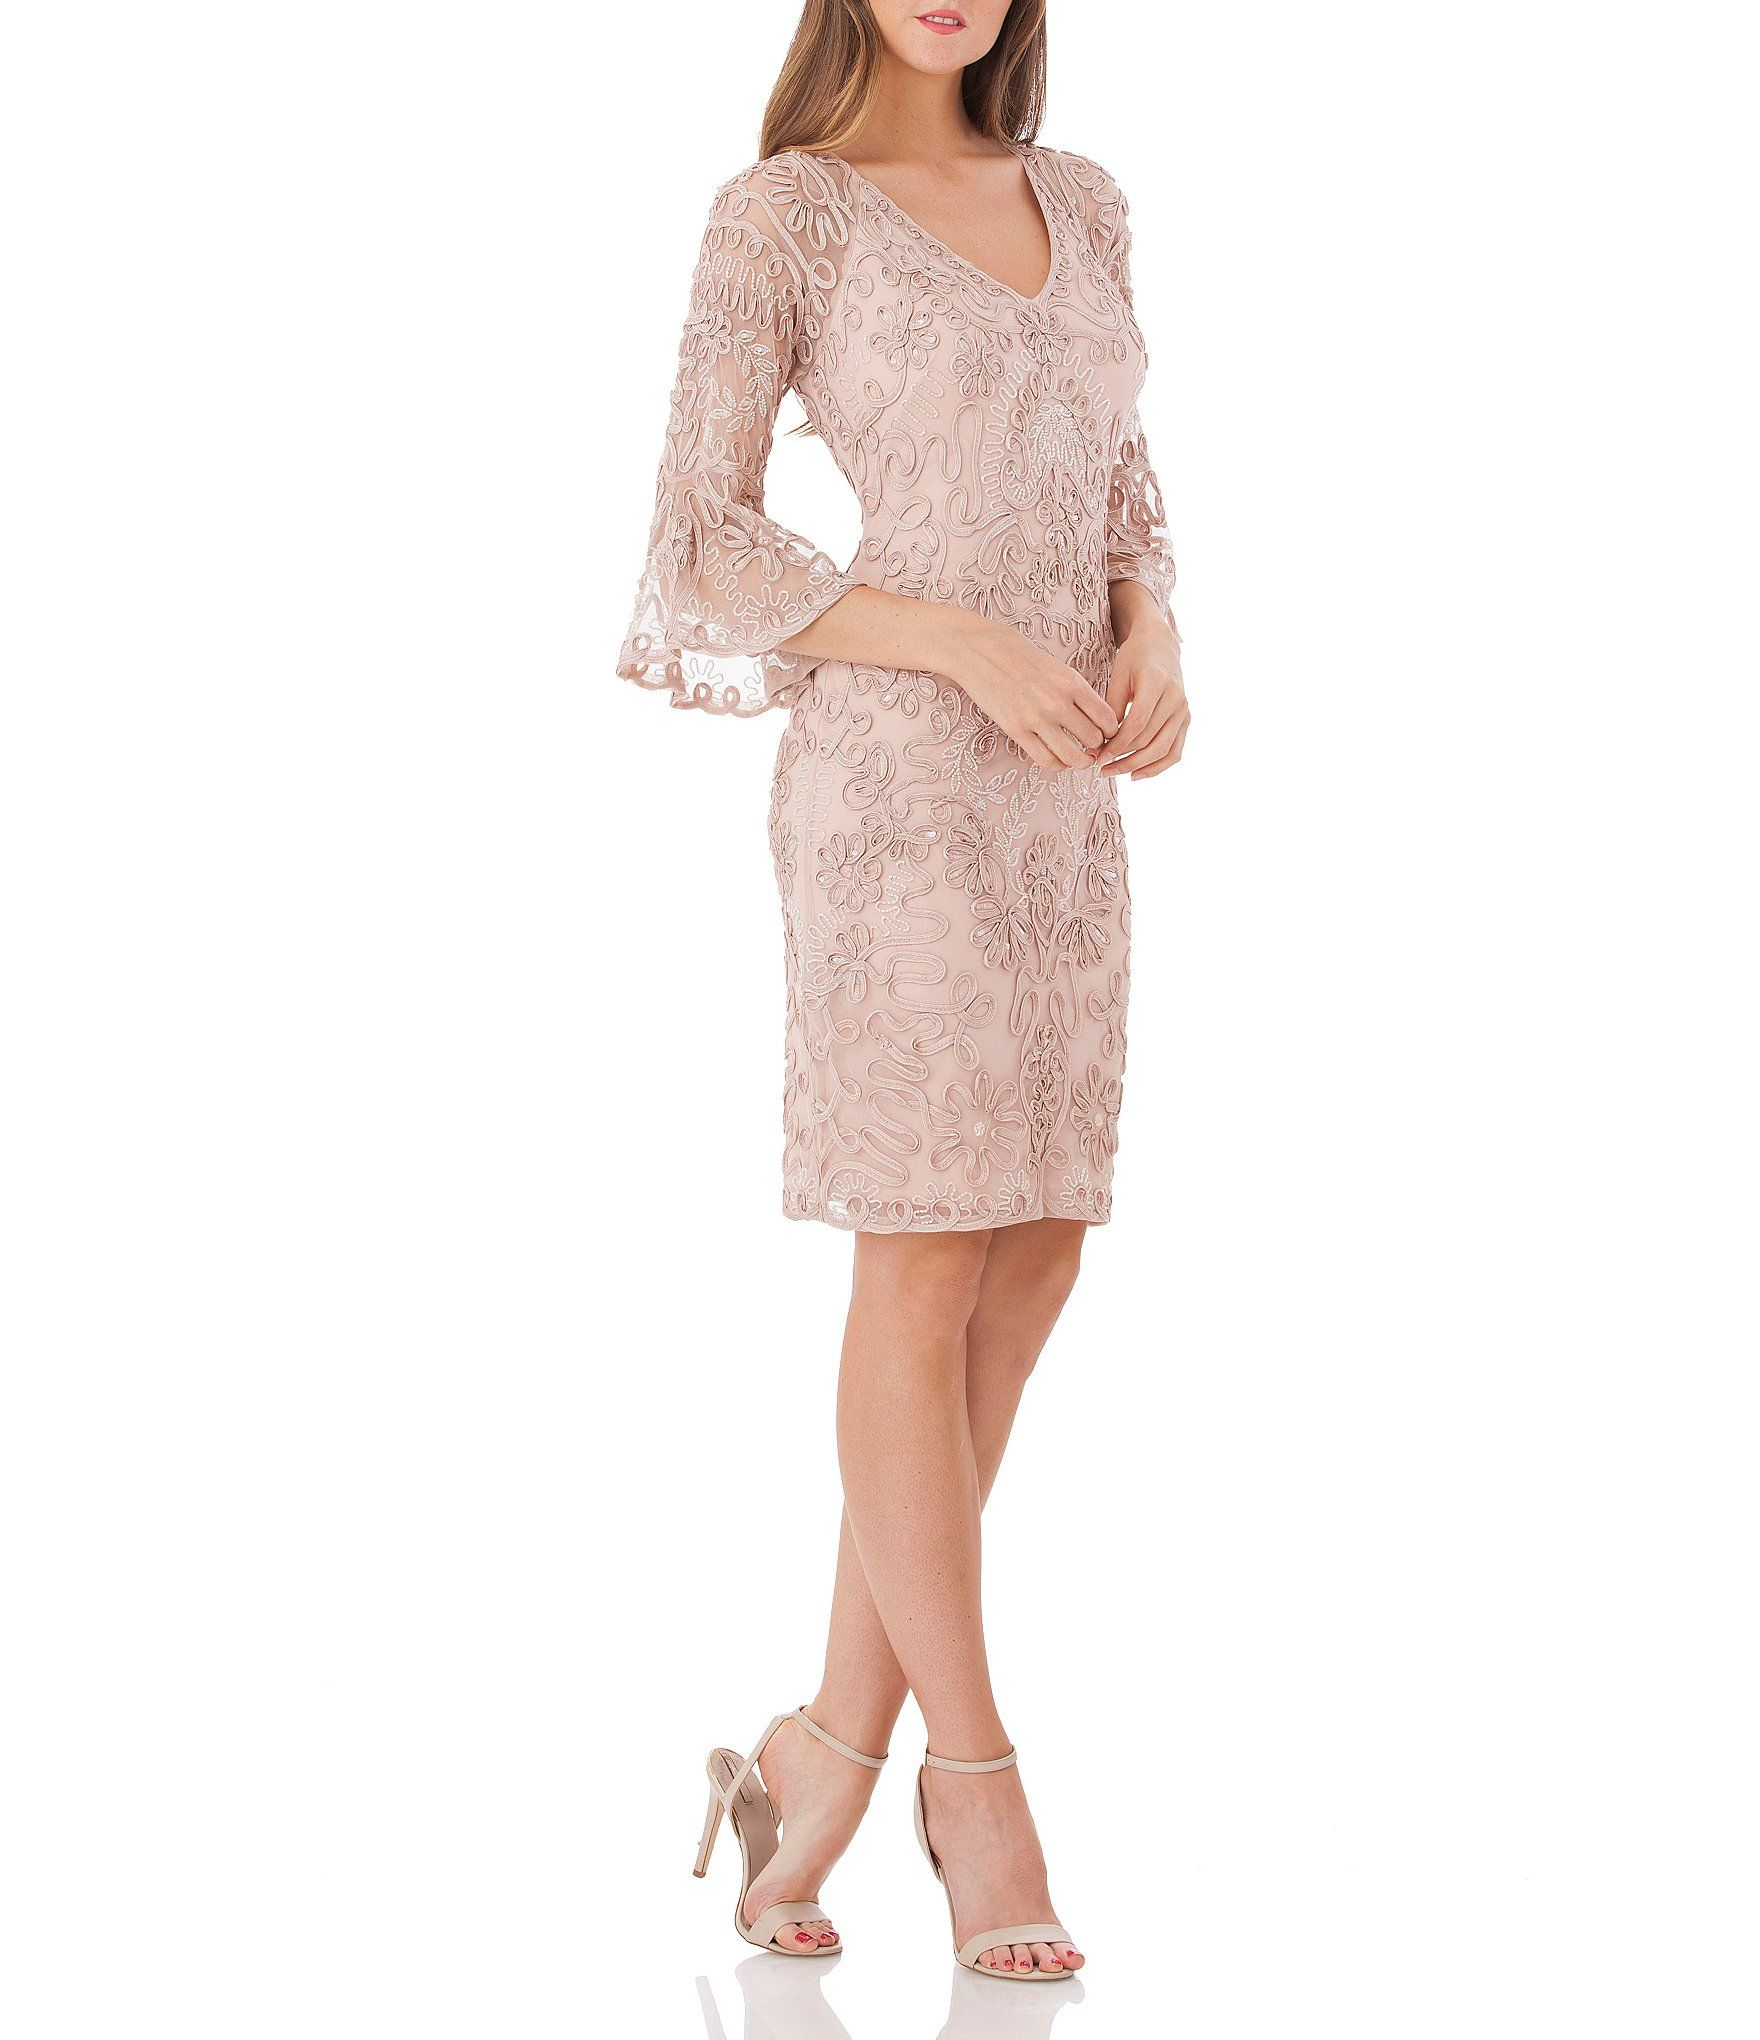 4ce6eb23 Shop for JS Collections Beaded Soutache Bell Sleeve Dress at Dillards.com.  Visit Dillards.com to find clothing, accessories, shoes, cosmetics & more.